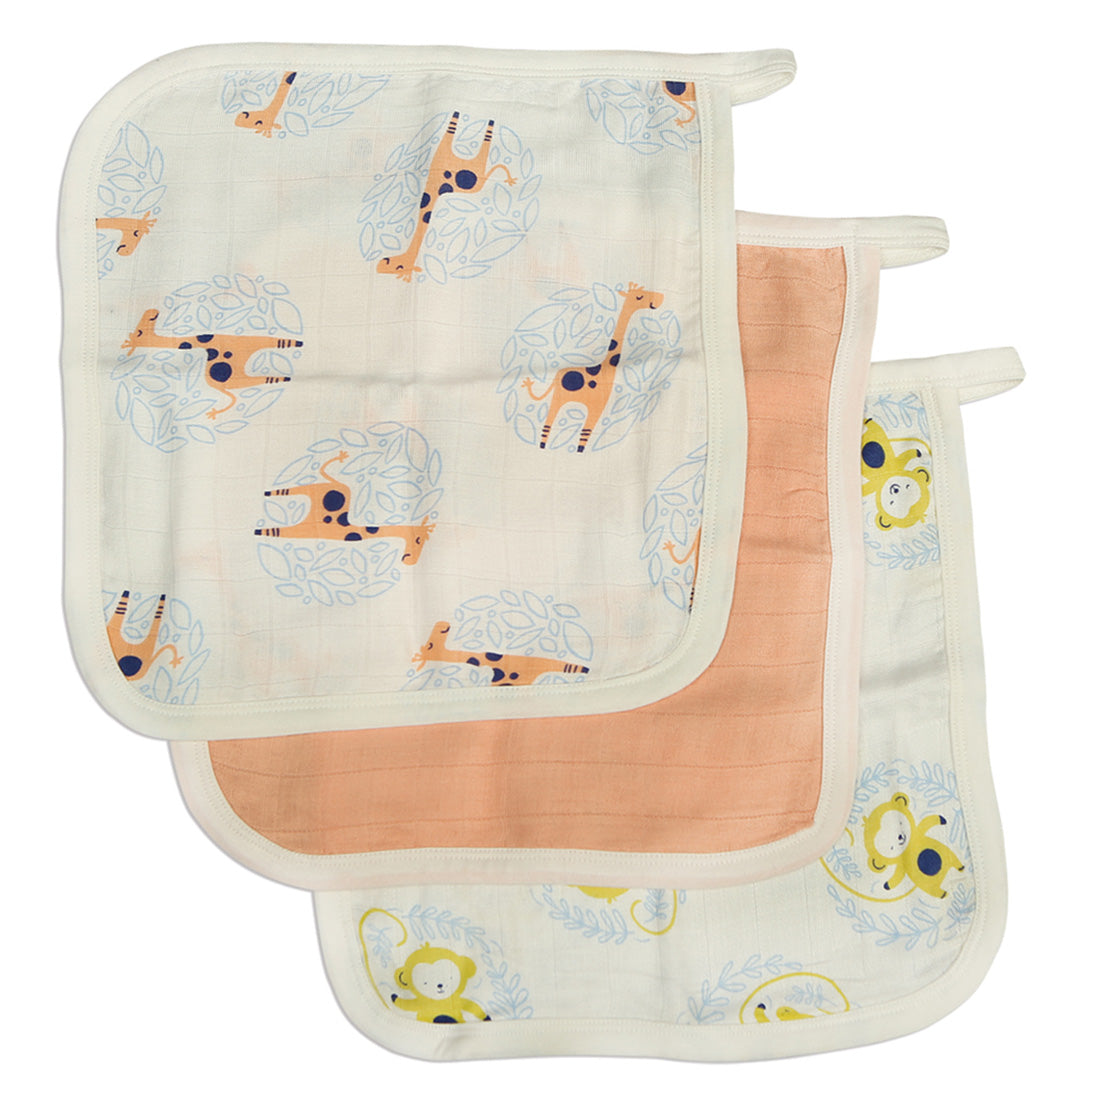 Silkberry Bamboo Muslin Washcloth Set 3 Pack - Giraffe Peach Monkey